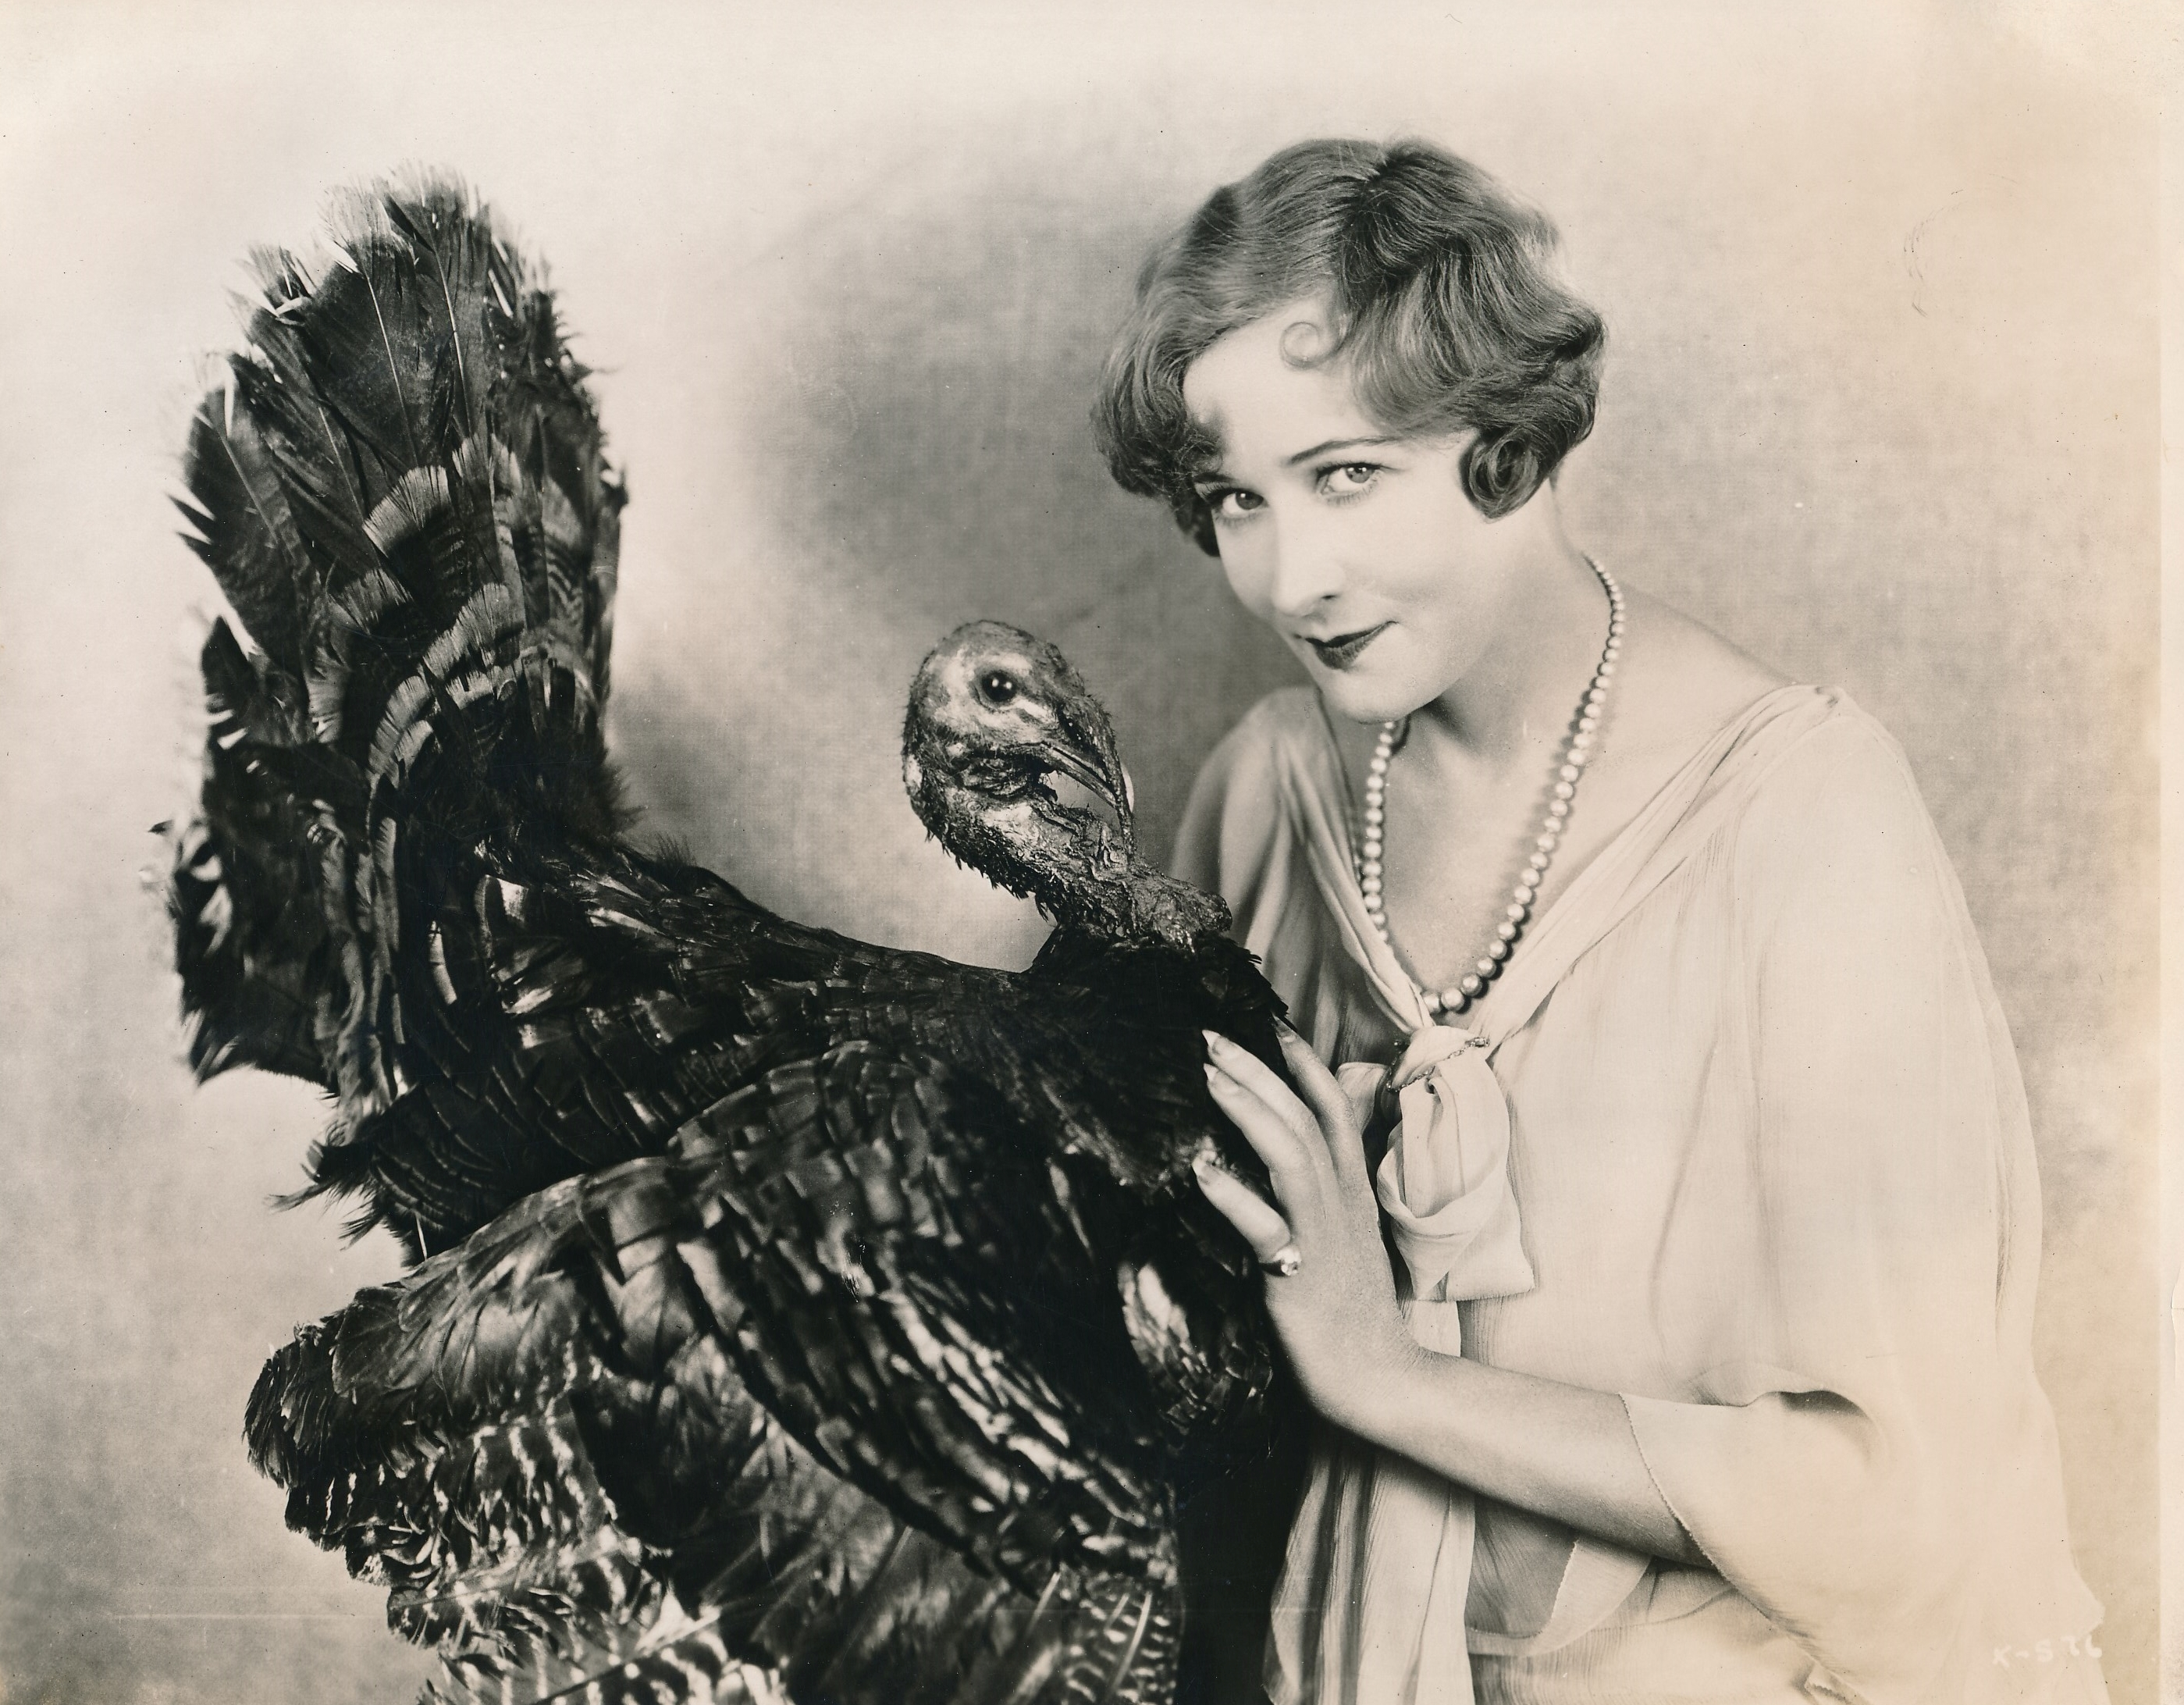 Actress Anna Q. Nilsson gives moviegoers 'the bird' in this excruciatingly-corny Thanksgiving still. Ms. Nilsson's career was no turkey---the Swedish beauty made films as early as 1911 and she segued from leading parts to character work into the 1950s. (c) Warner Brothers